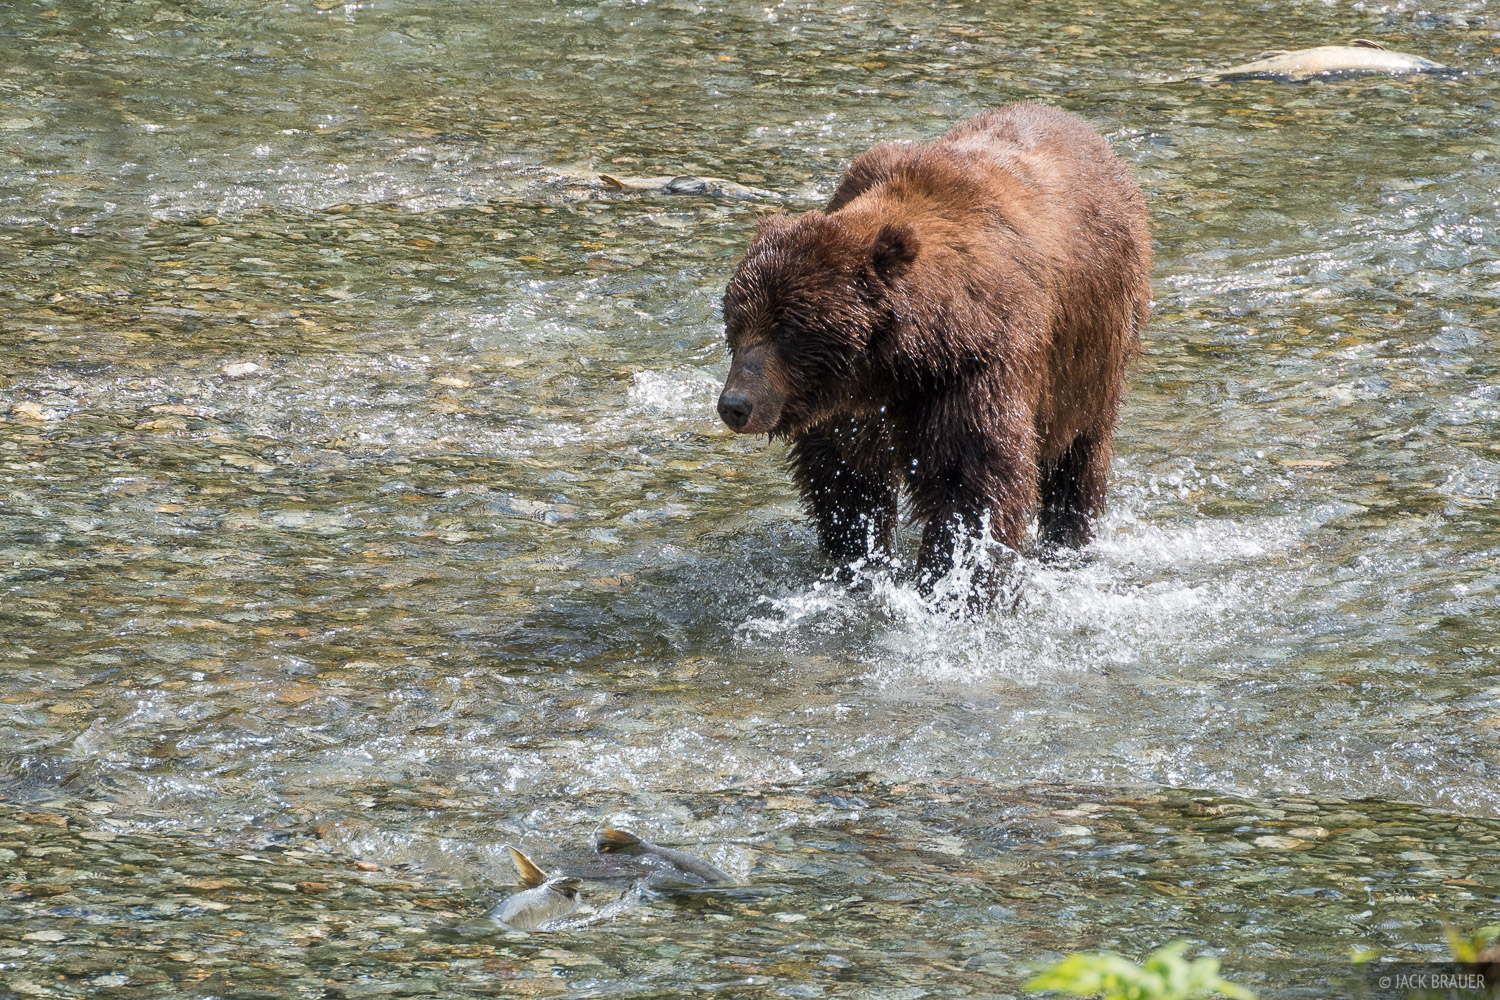 Grizzly bear hunting for salmon.